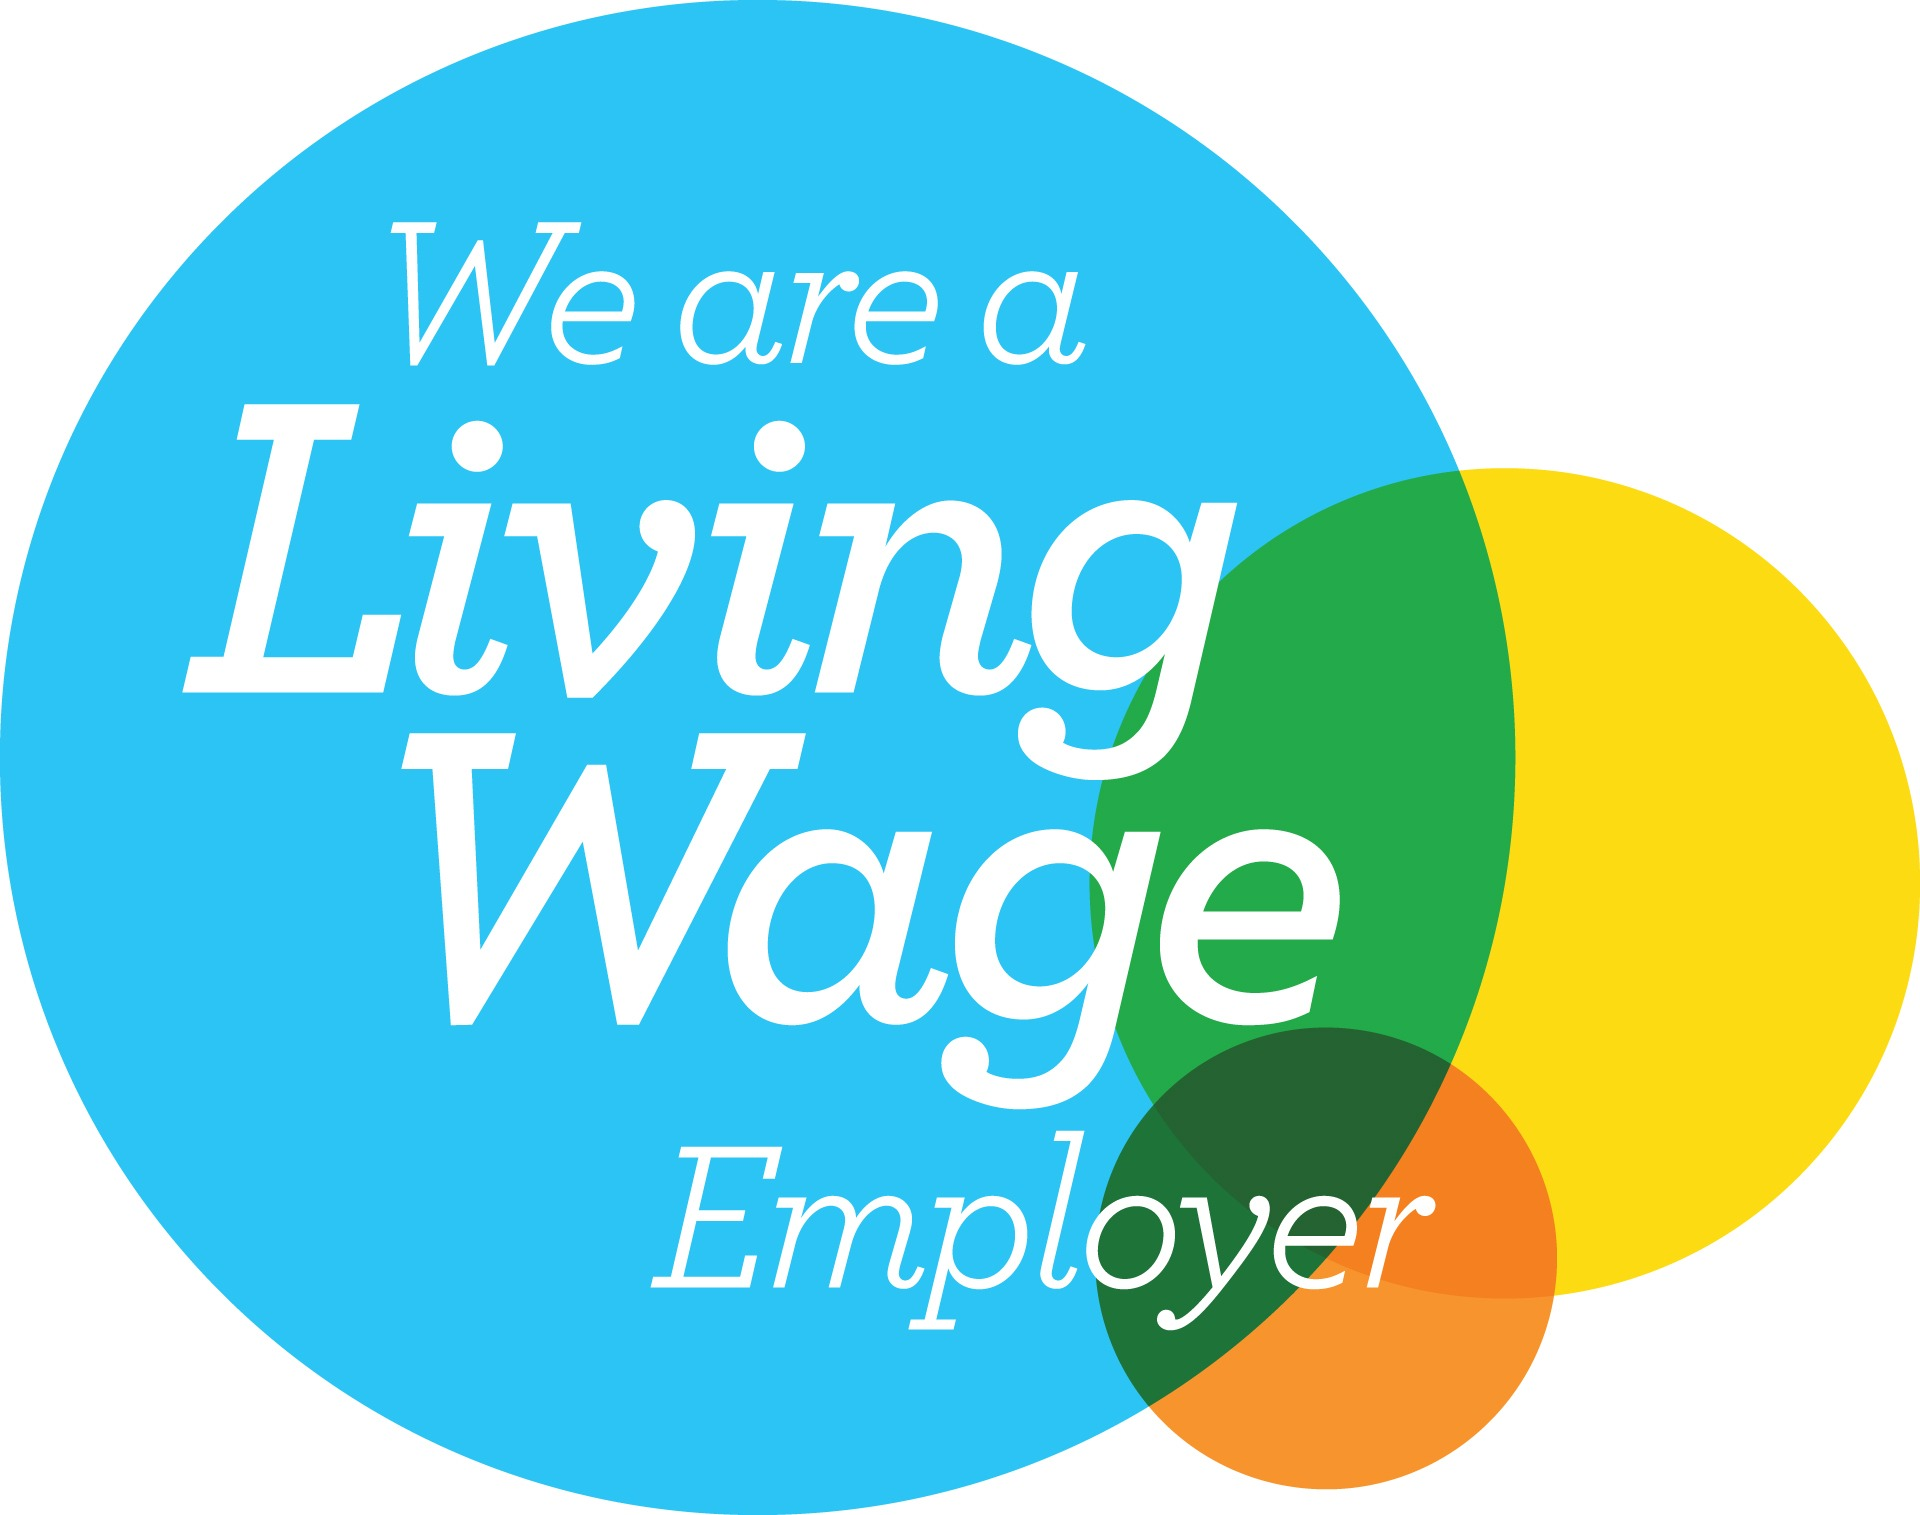 We're Accredited as a Living Wage Employer